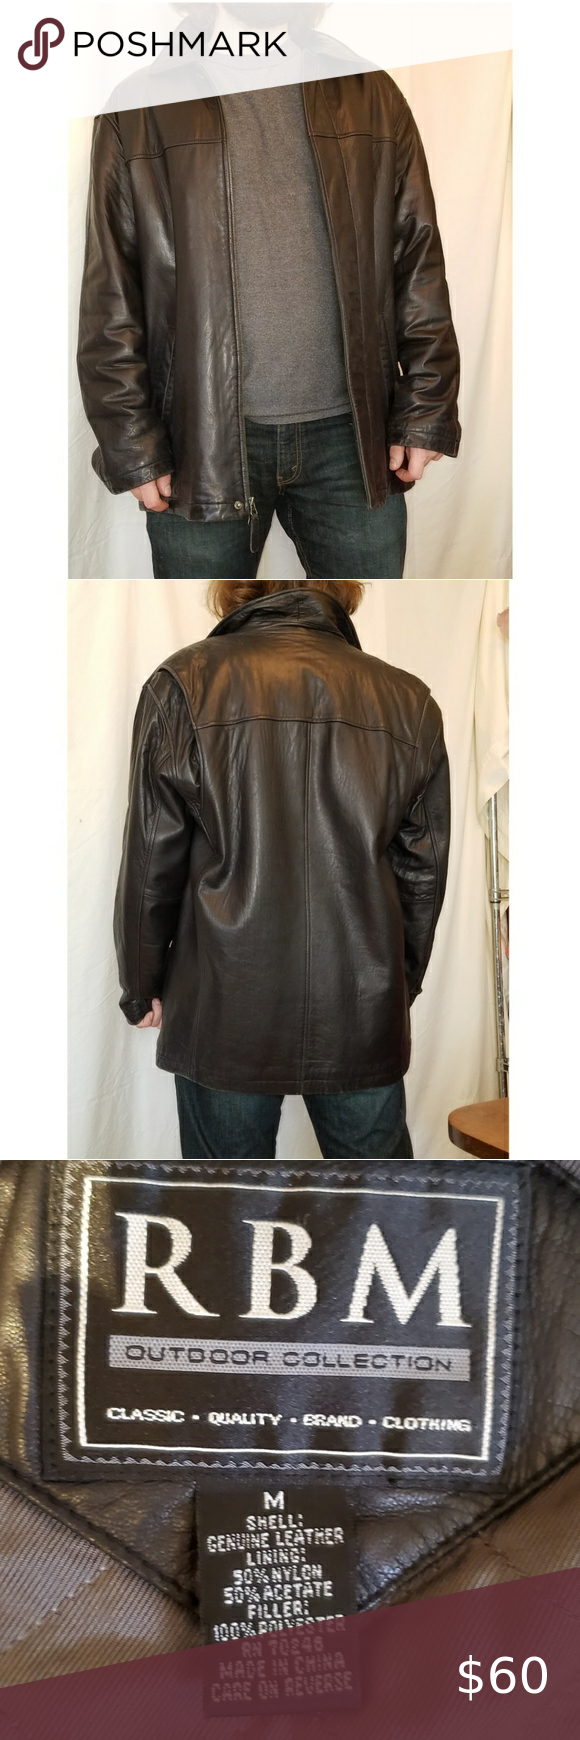 Rbm Outdoor Collection Leather Jacket Sz M Leather Jacket Jackets Leather